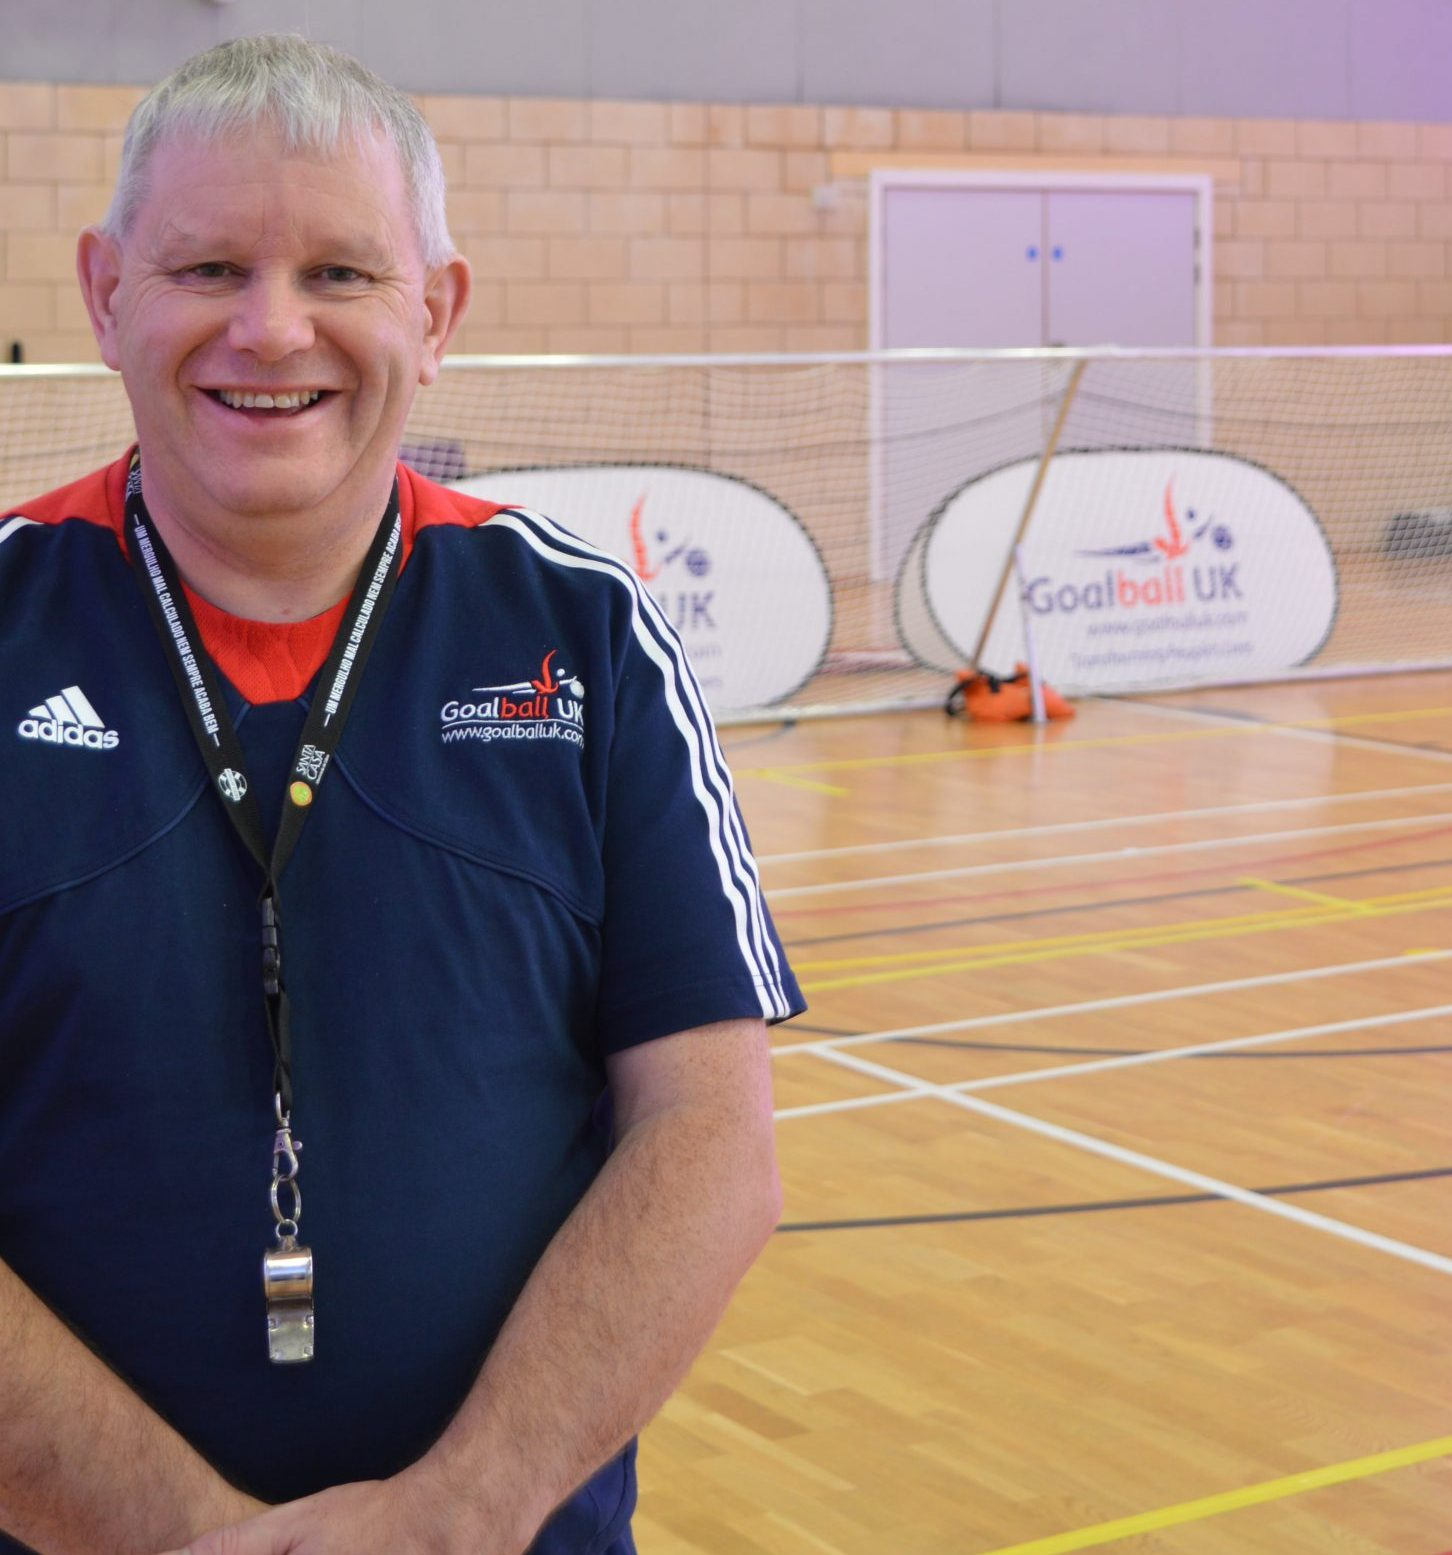 Goalball UK celebrates 10 years with 10 stories – Robert Avery